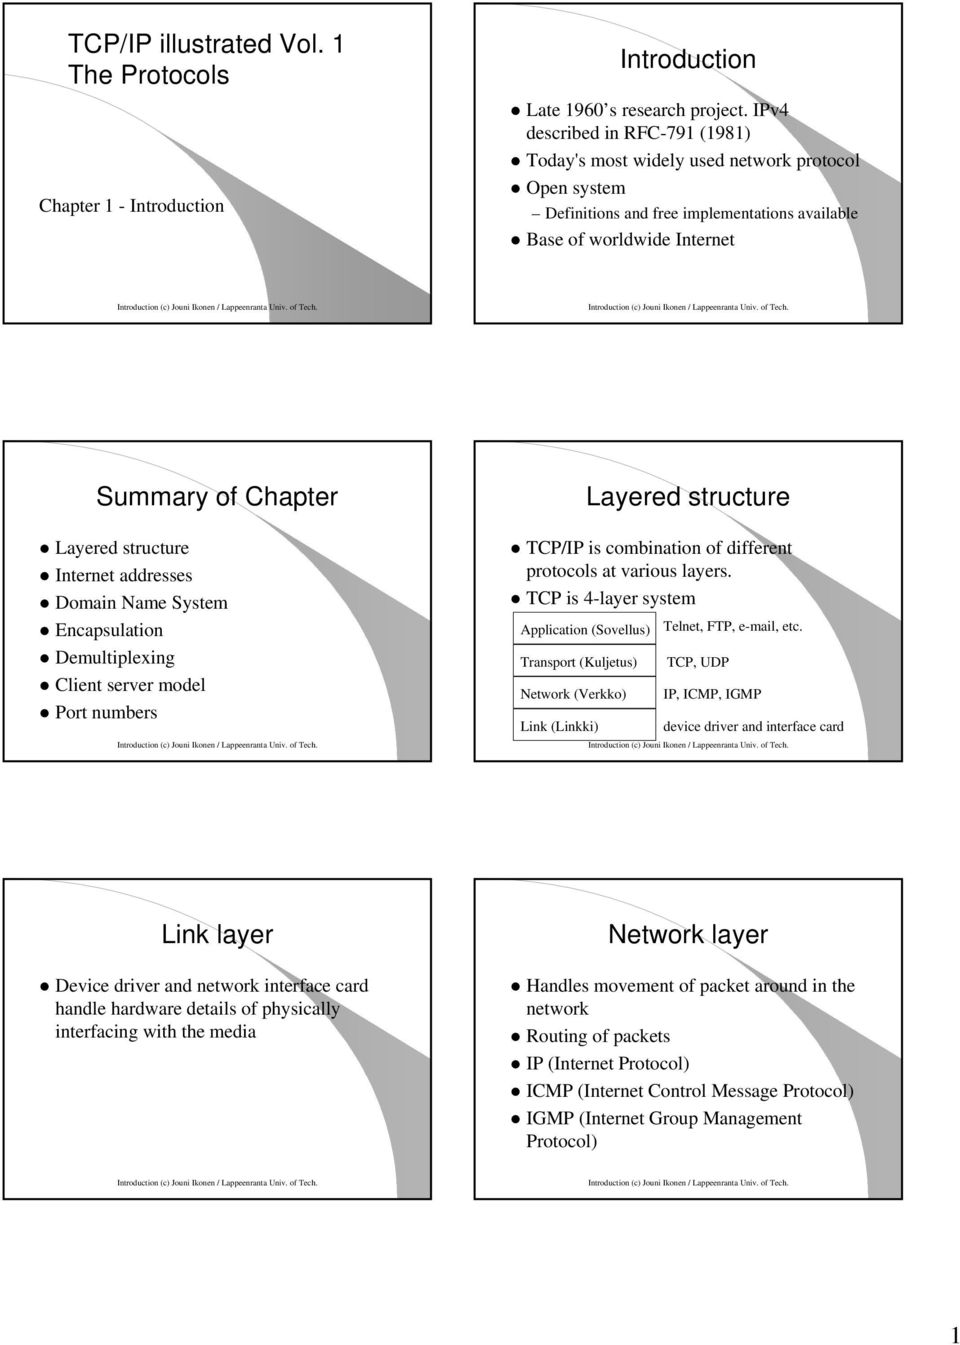 Introduction (c) Jouni Ikonen / Summary of Chapter Layered structure Layered structure Internet addresses Domain Name System Encapsulation Demultiplexing Client server model Port numbers Introduction